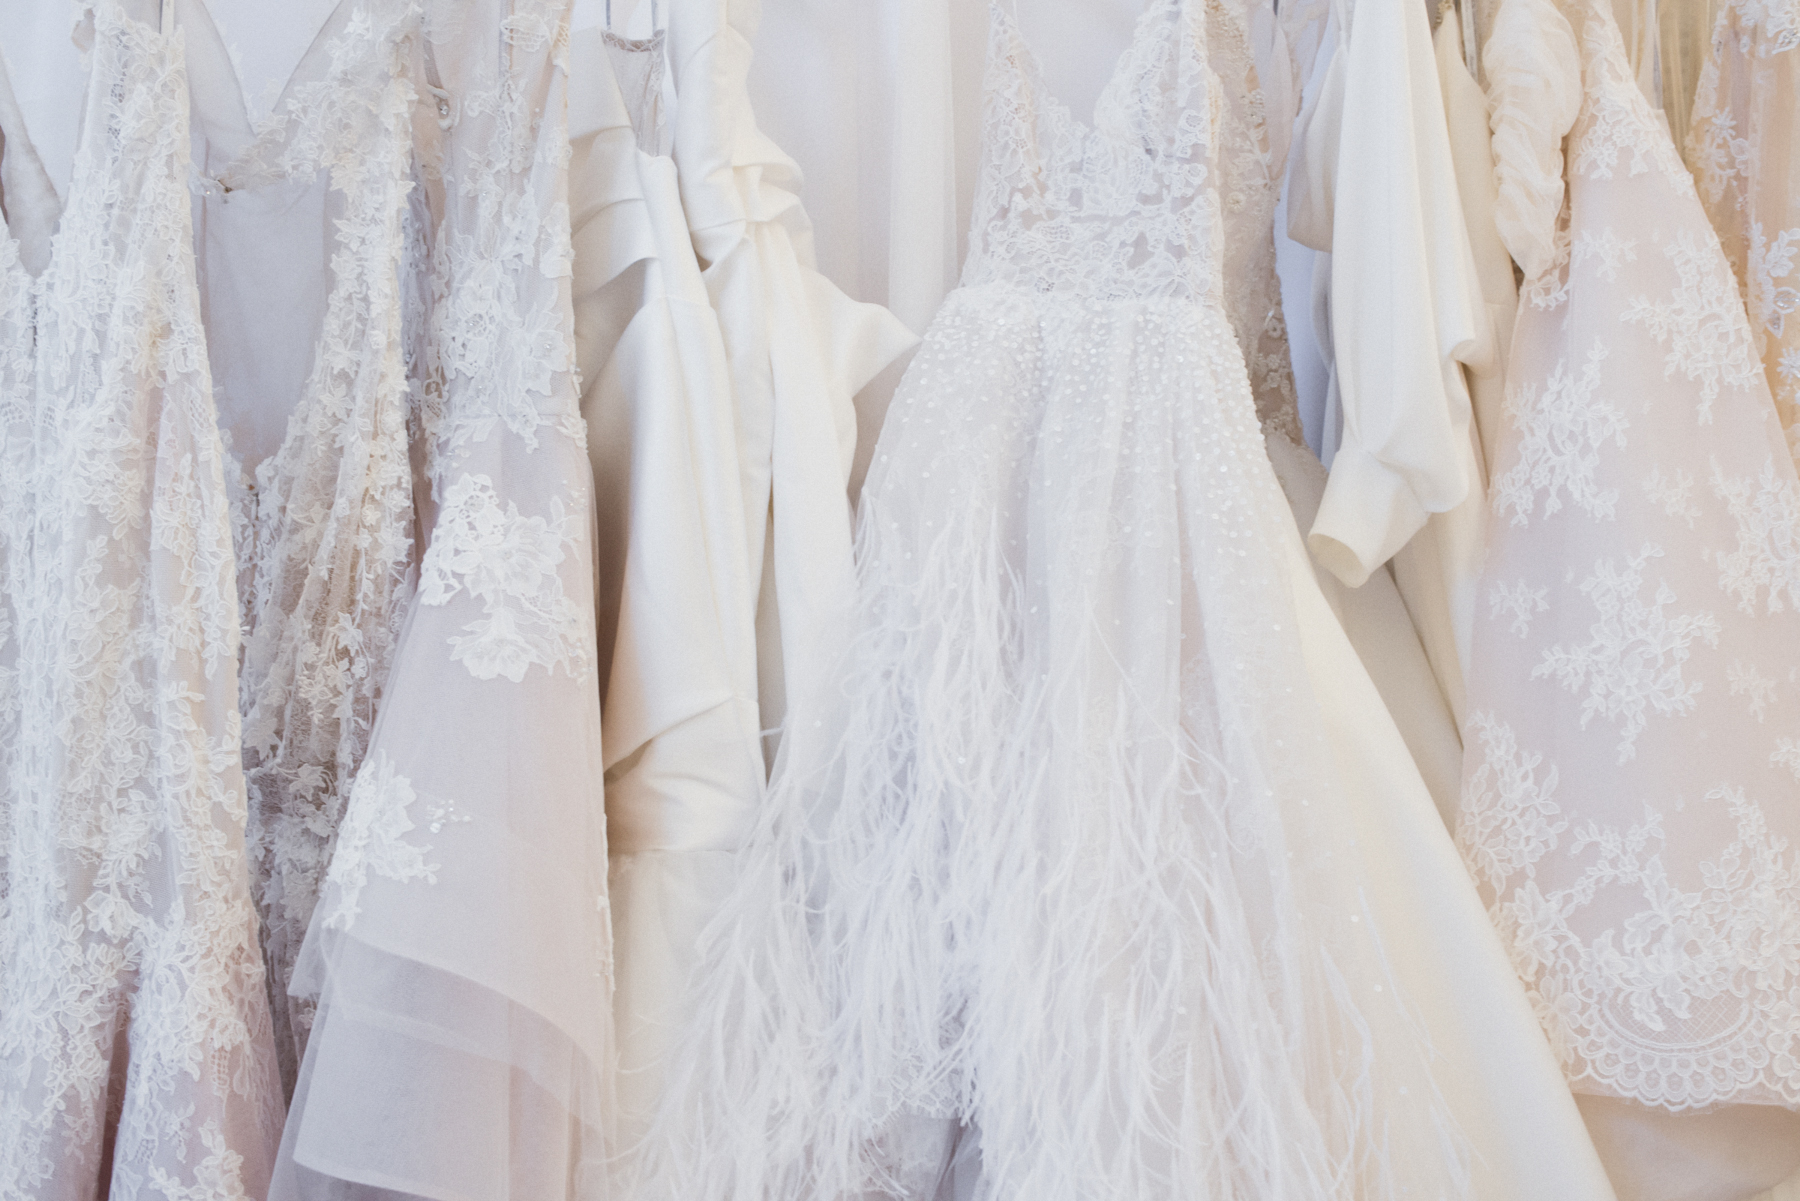 Where to Resell Your Wedding Dress - Vox